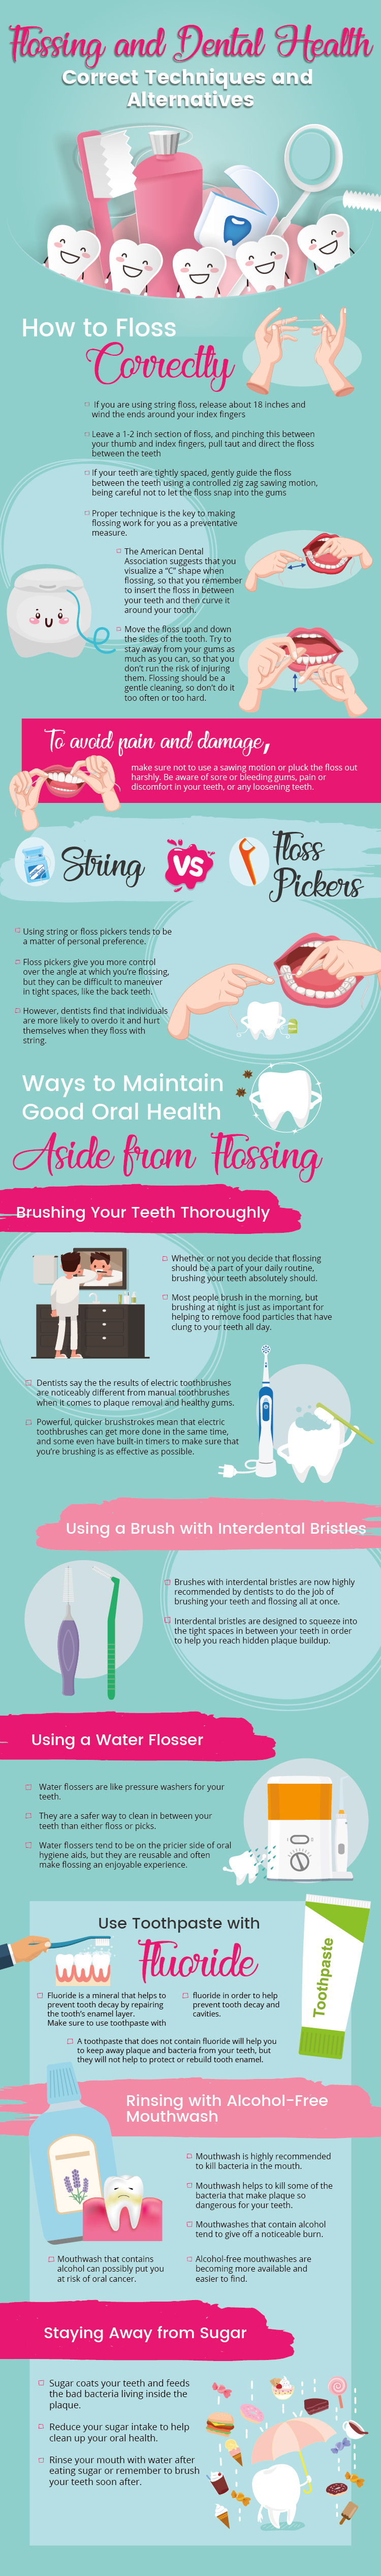 Correct Flossing And Dental Health - Infographic